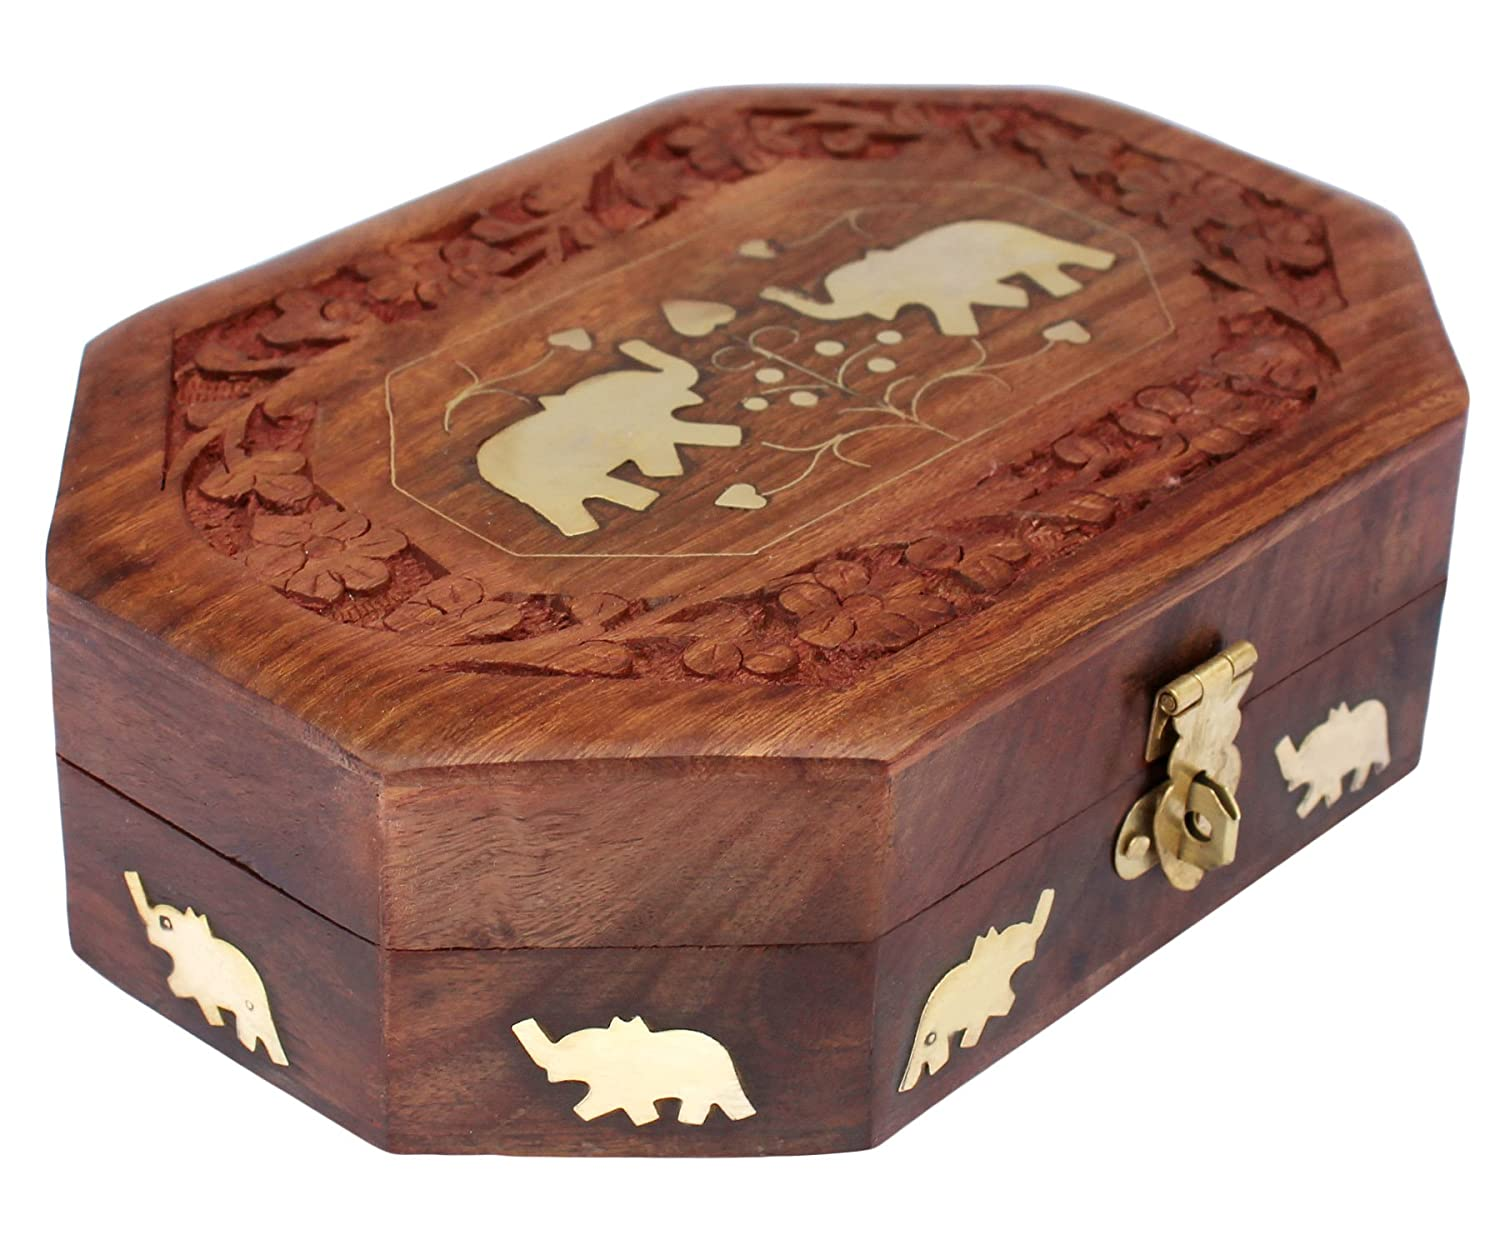 Sheesham wood Wooden Jewellery Box Octagonal Handcrafted Elephant Brass Inlay & Wood Carvings